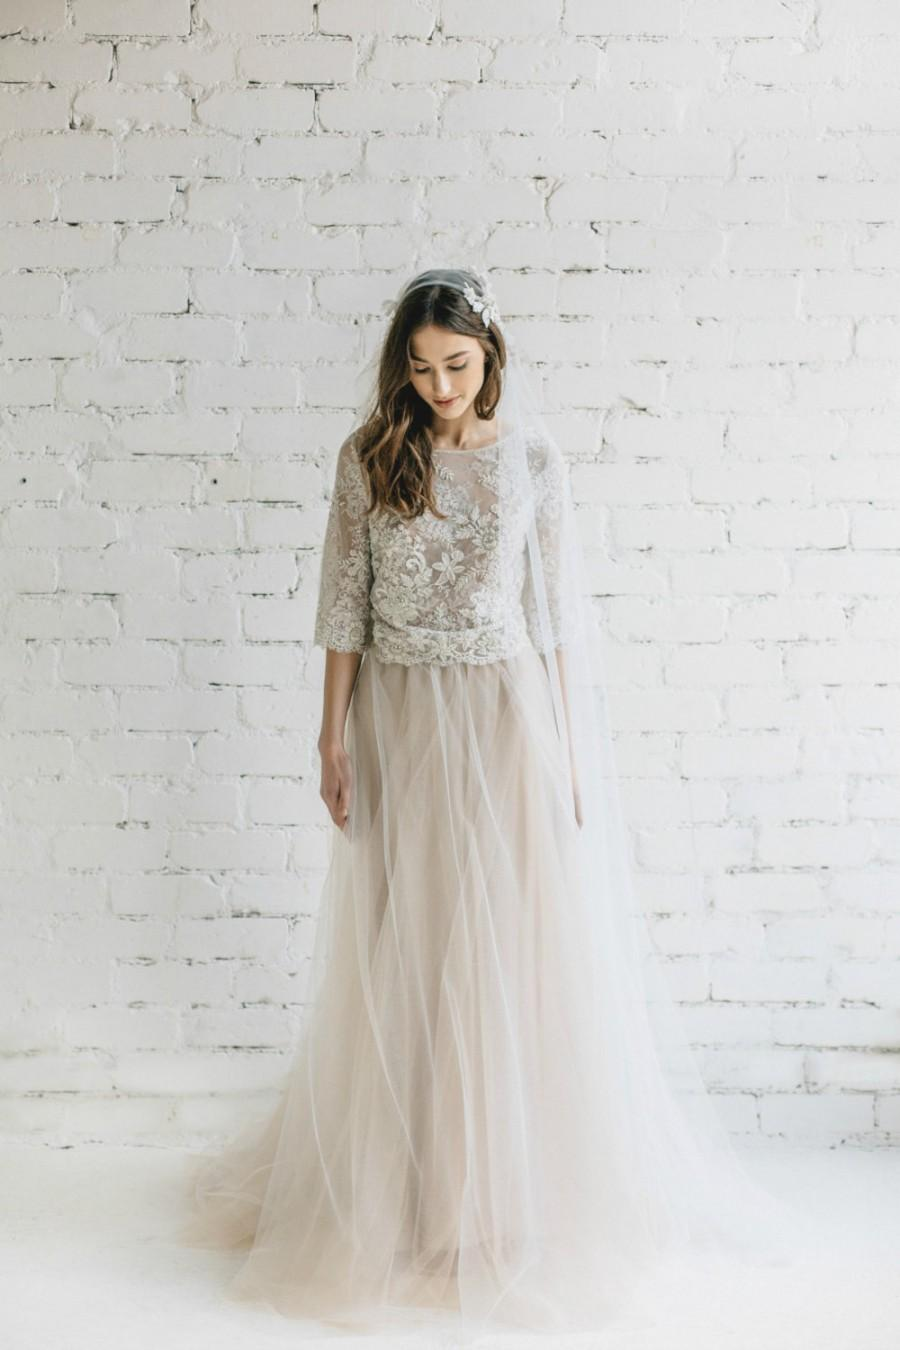 Wedding Dress Two Piece Bridal Dress Bridal Separates